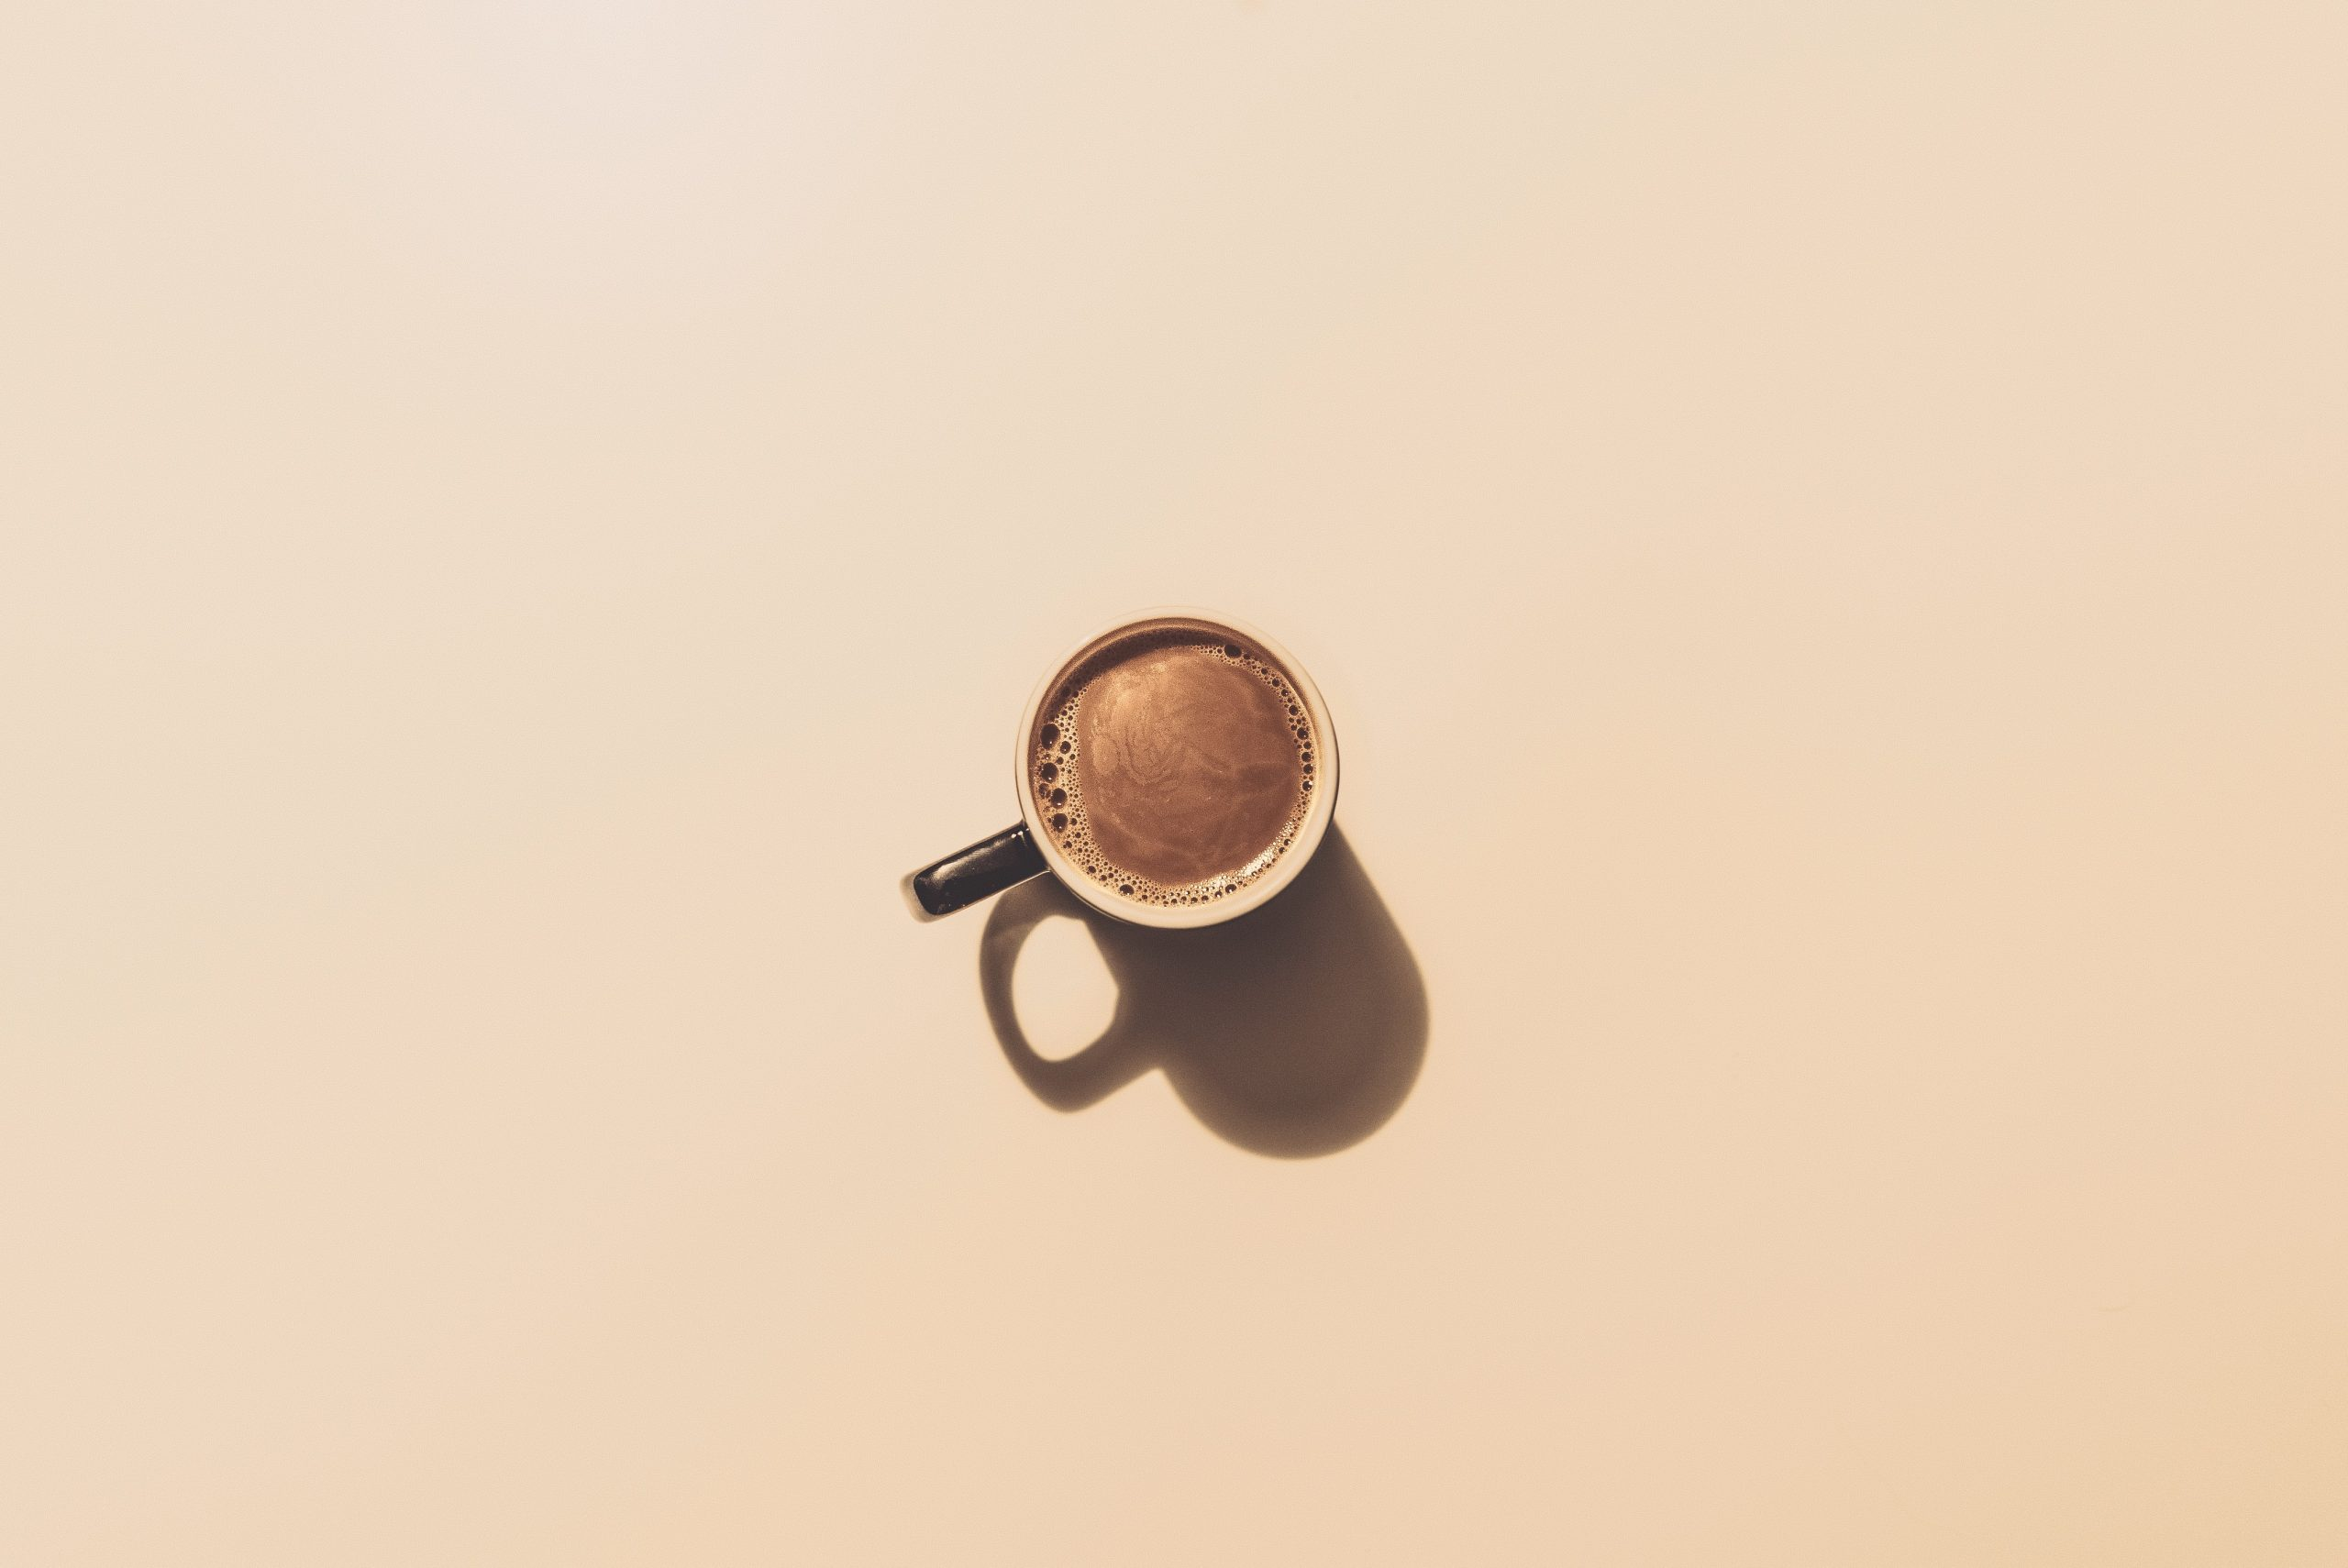 coffee for your thoughts